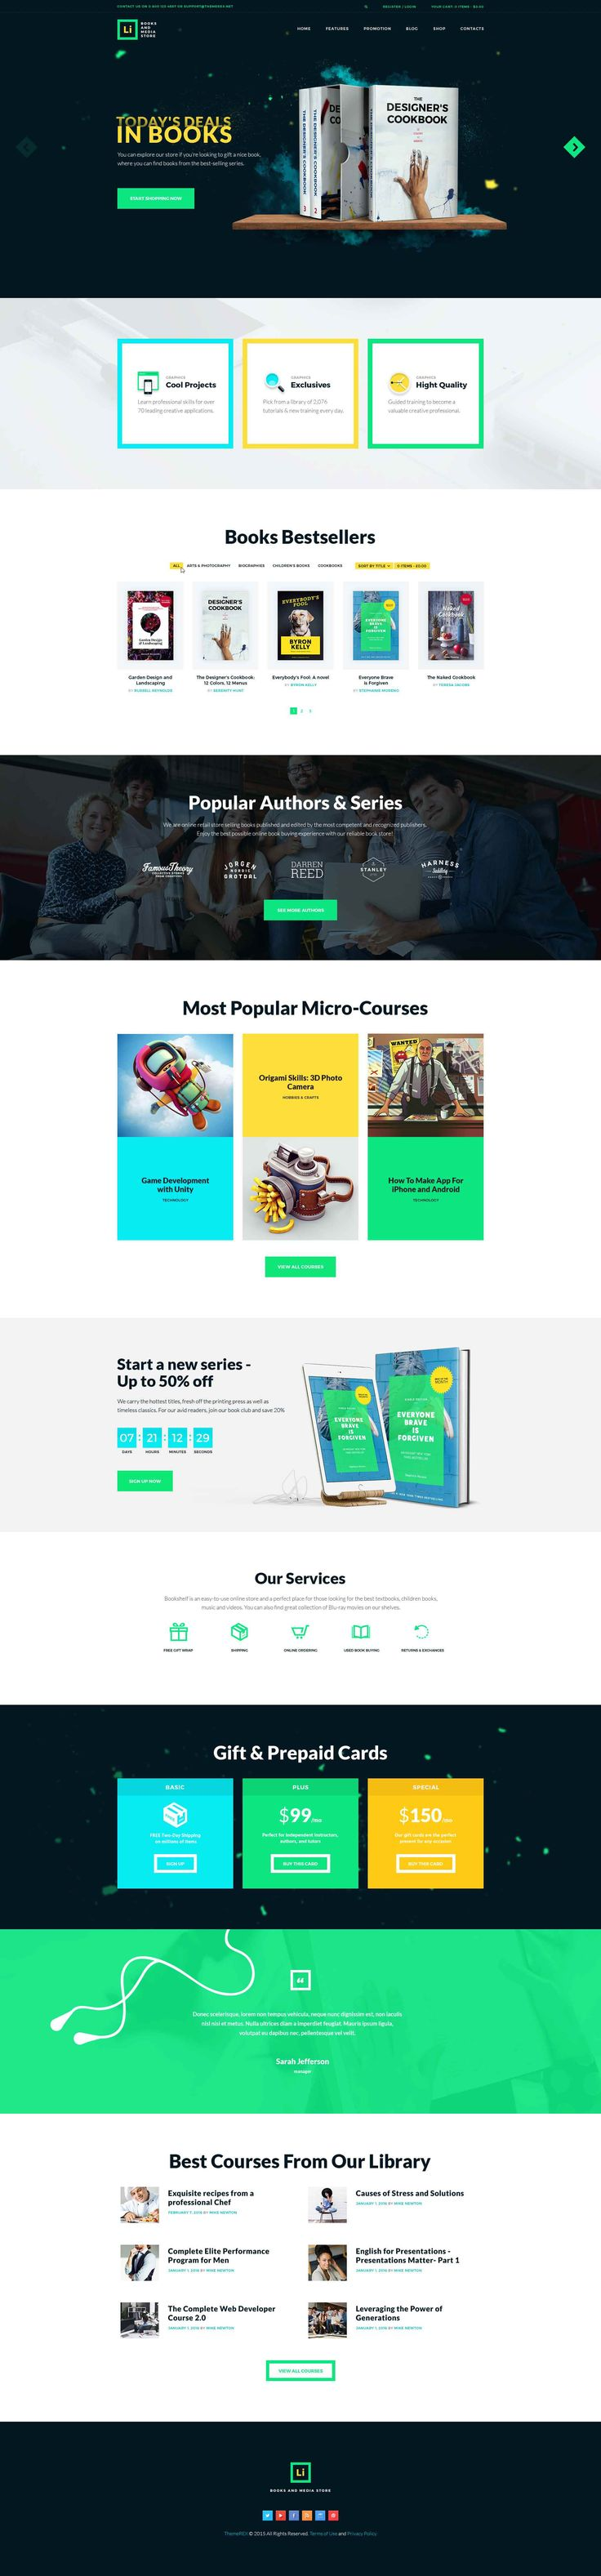 Lorem Ipsum is a WordPress theme that will be a splendid solution for your online bookstore. The theme is ideal for online websites selling any media products, like audio and electronic books, music, movies, video games or micro courses. You can easily us…